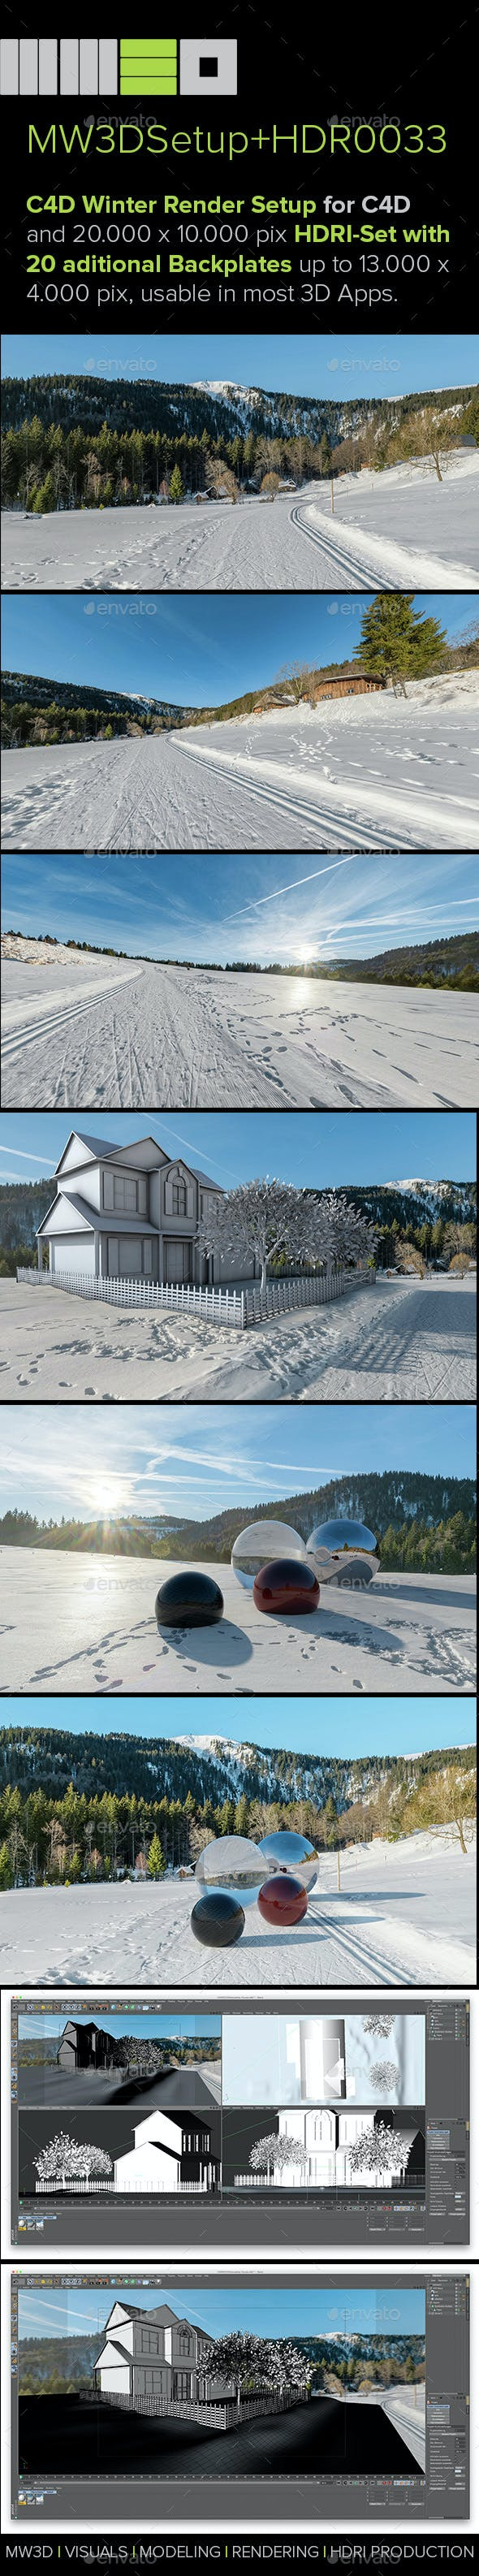 MW3DHDR0033 Highres Winter Snow HDRI Set + 2 Render Setups for Cinema 4D - 3DOcean Item for Sale